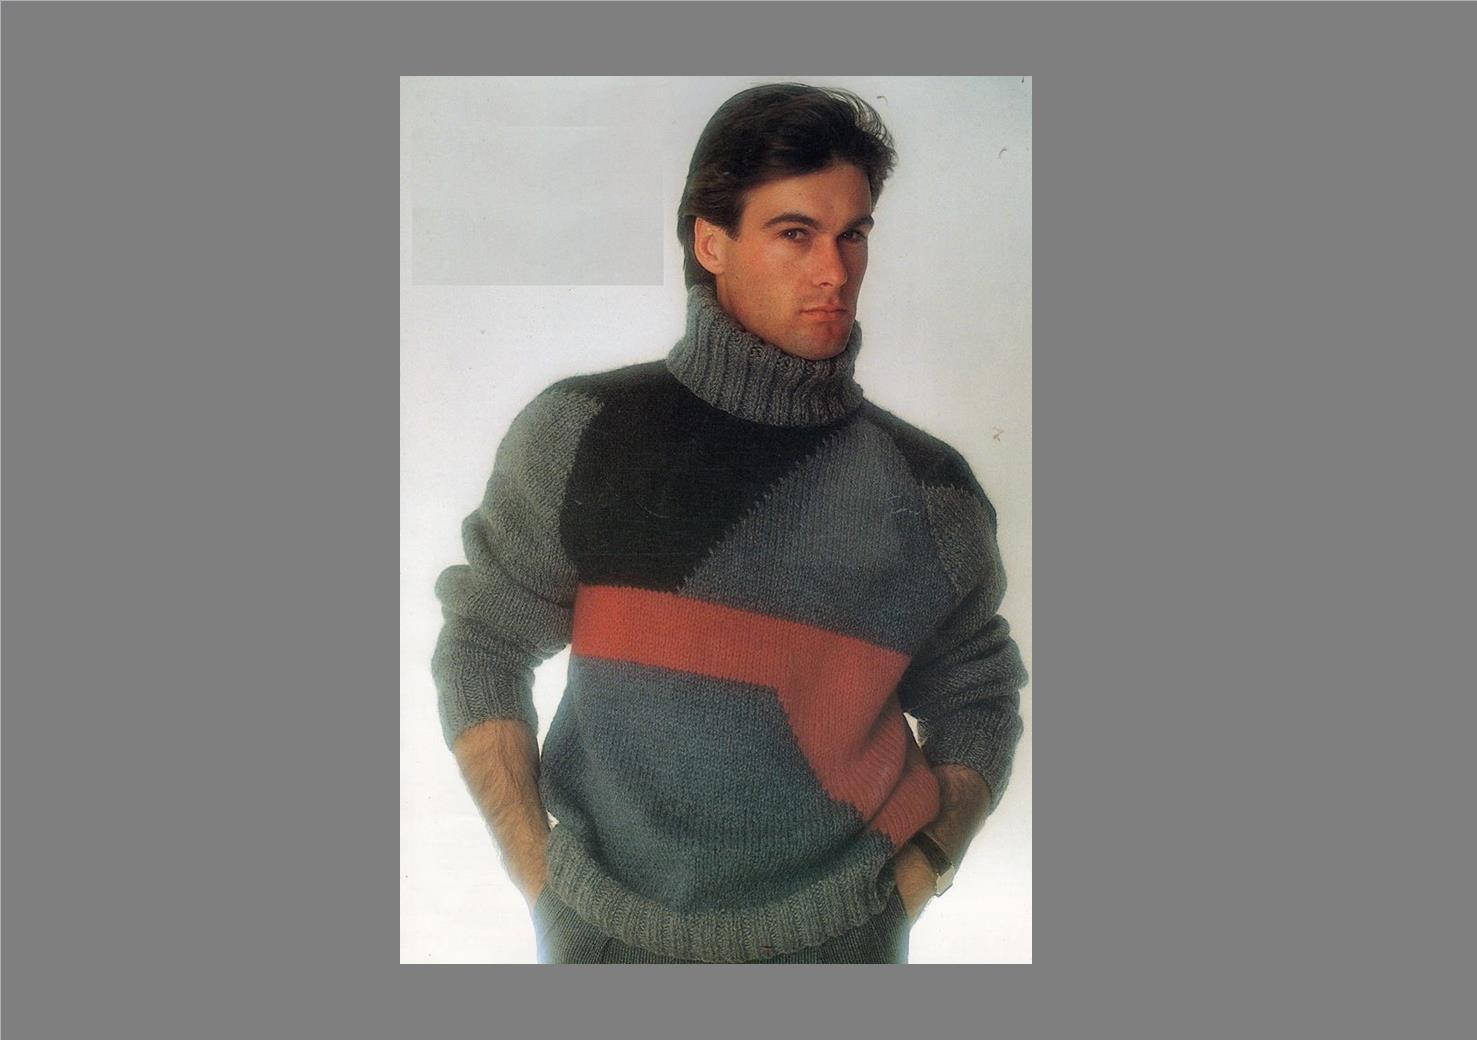 Free Knitting Patterns For Men's Sweaters Pdf Mens Sweater Pattern Patchwork Sweater Bulky Knit Sweater Vintage Knitting Pattern Pdf Pattern Post Free Knitting Pattern